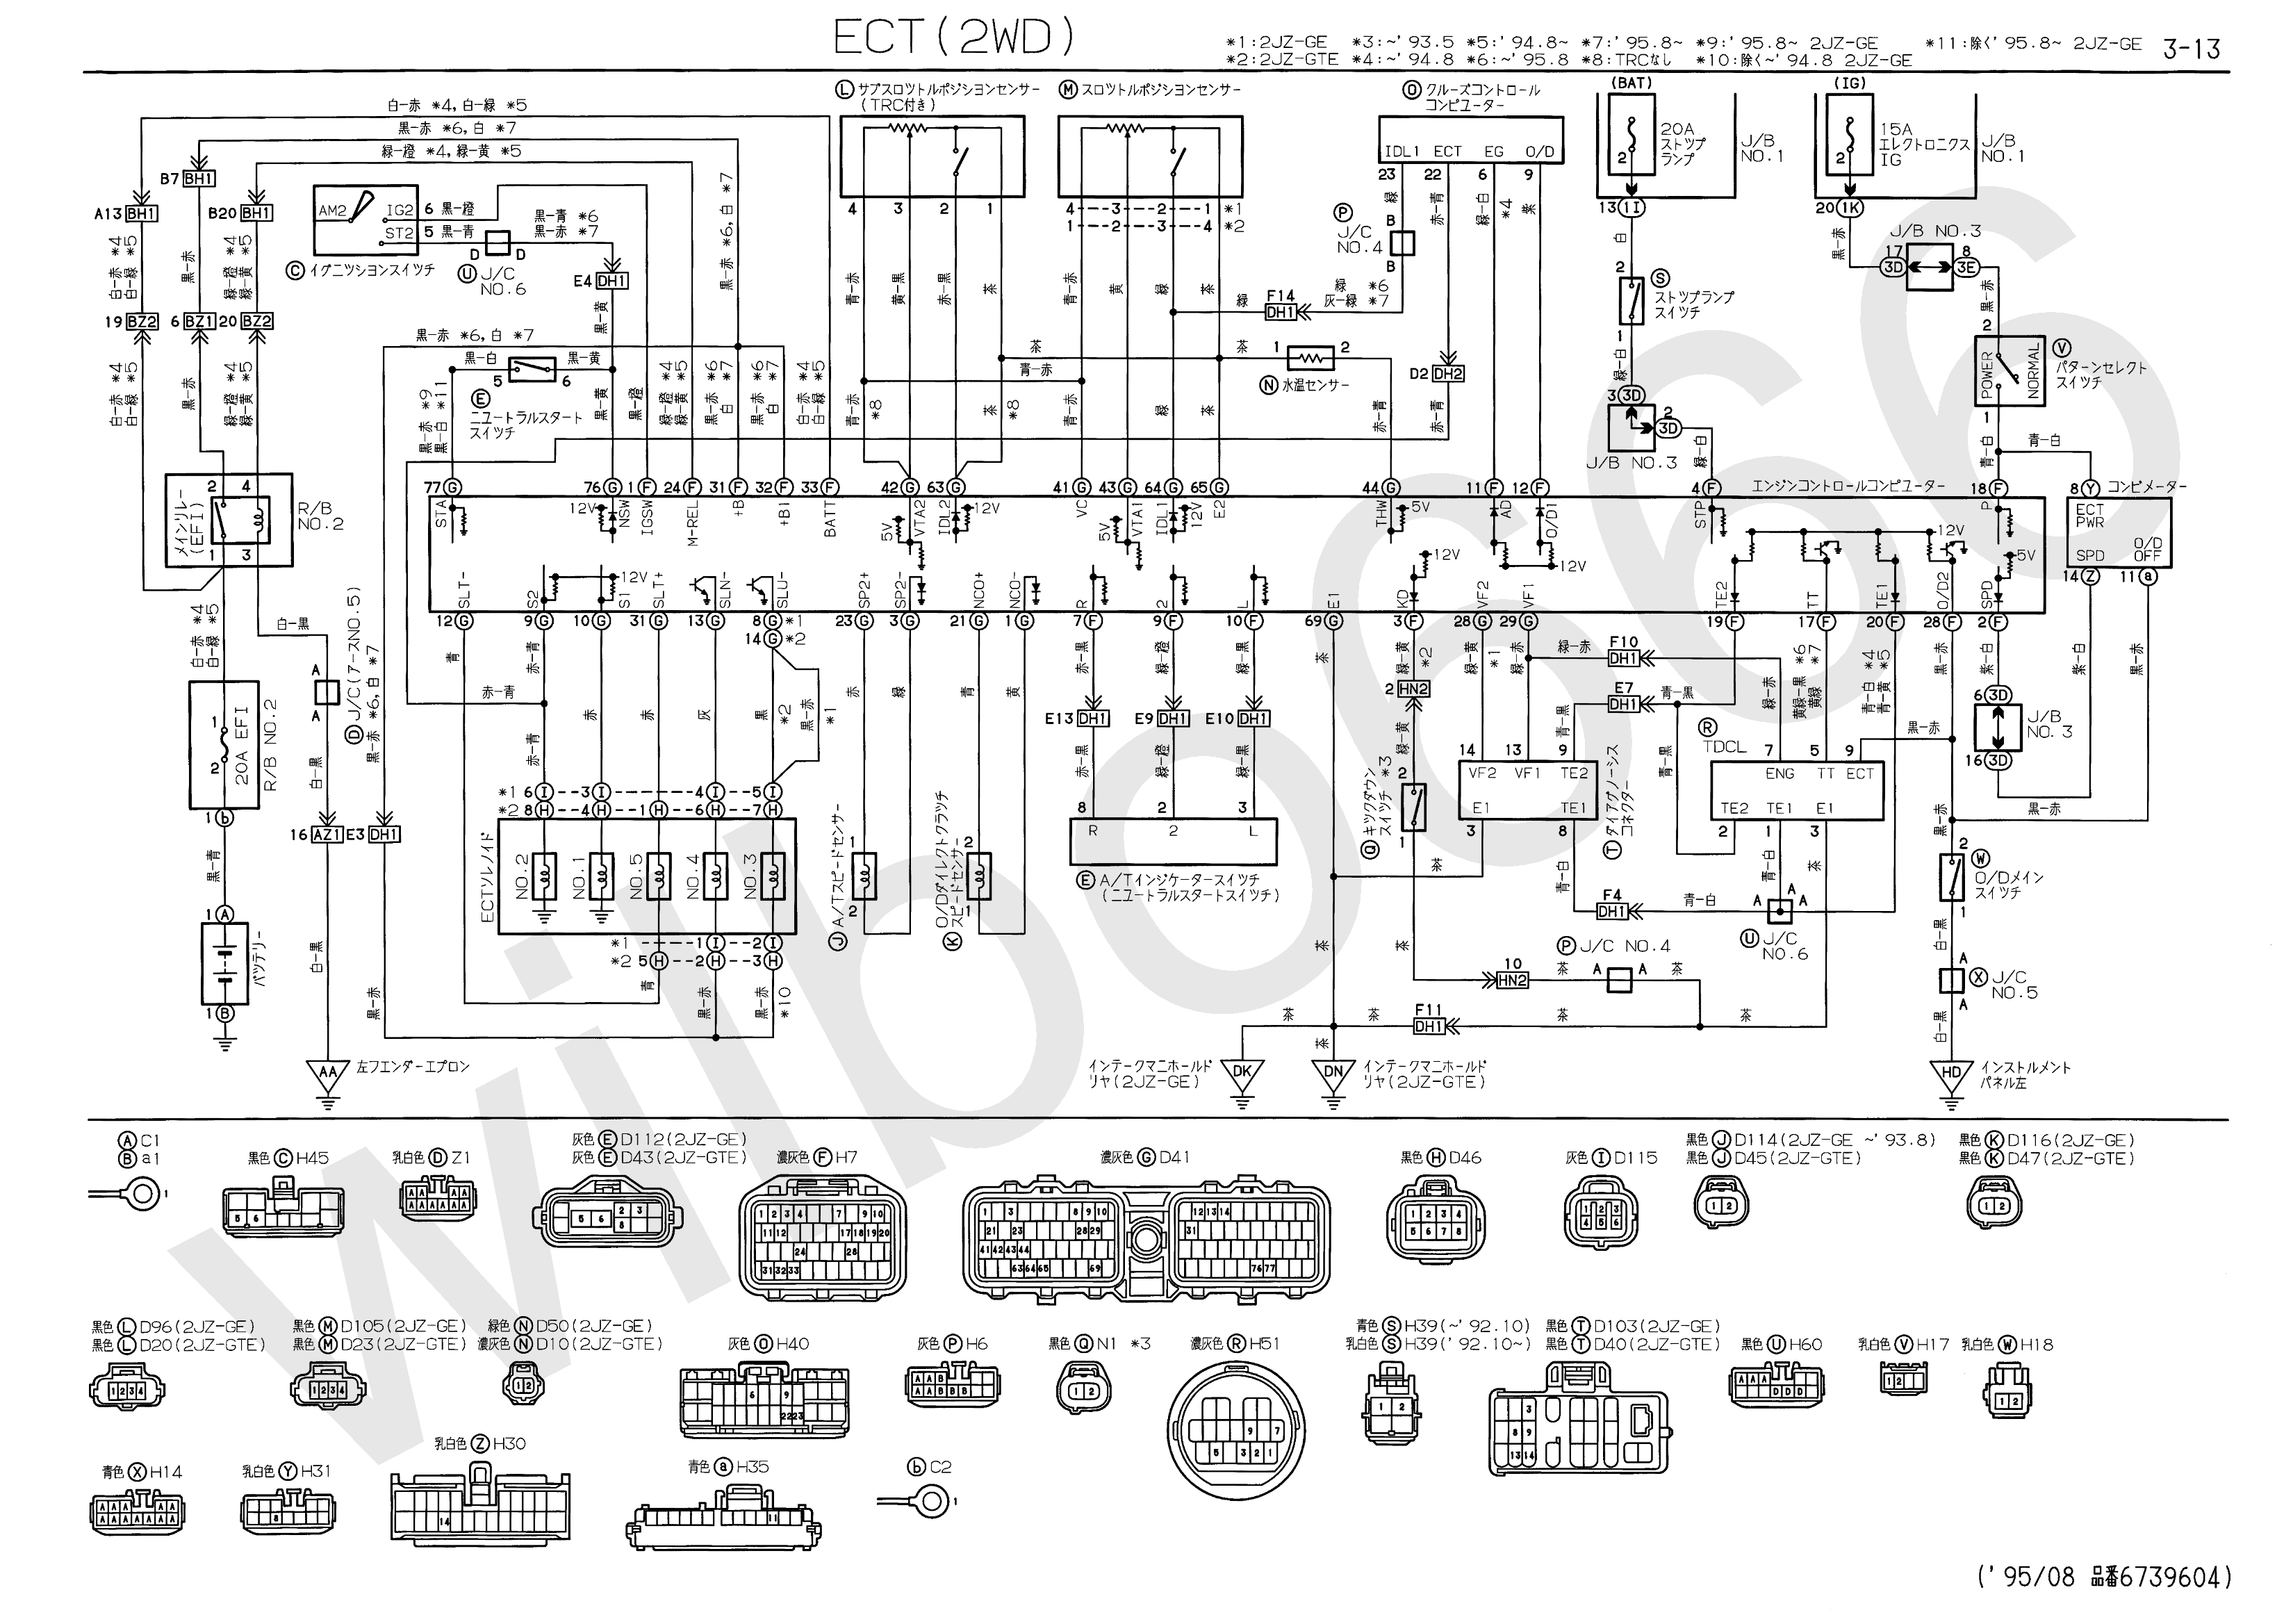 Vauxhall Vivaro Ecu Wiring | Wiring Schematic Diagram - wwww ... on toyota 4runner diagram, gm steering column diagram, ecu schematic diagram, ecu fuse diagram, gm horn diagram, gm 1228747 computer diagram, nissan sentra electrical diagram, gm transmission diagram, exhaust diagram, gm power steering pump diagram, ecu circuits, ecu block diagram,